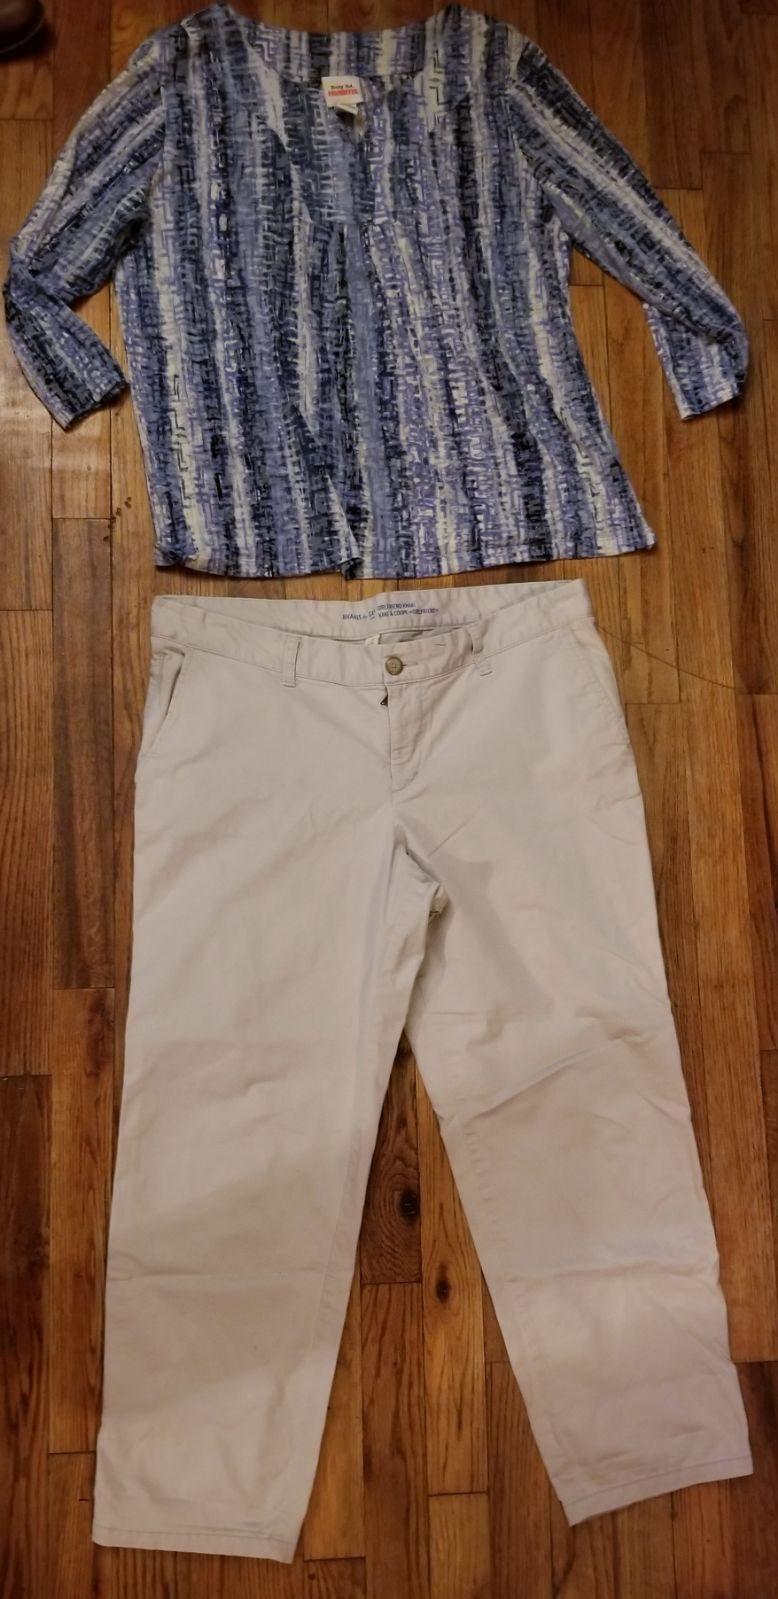 Womens Outfit Top/ GAP Pants Size 14